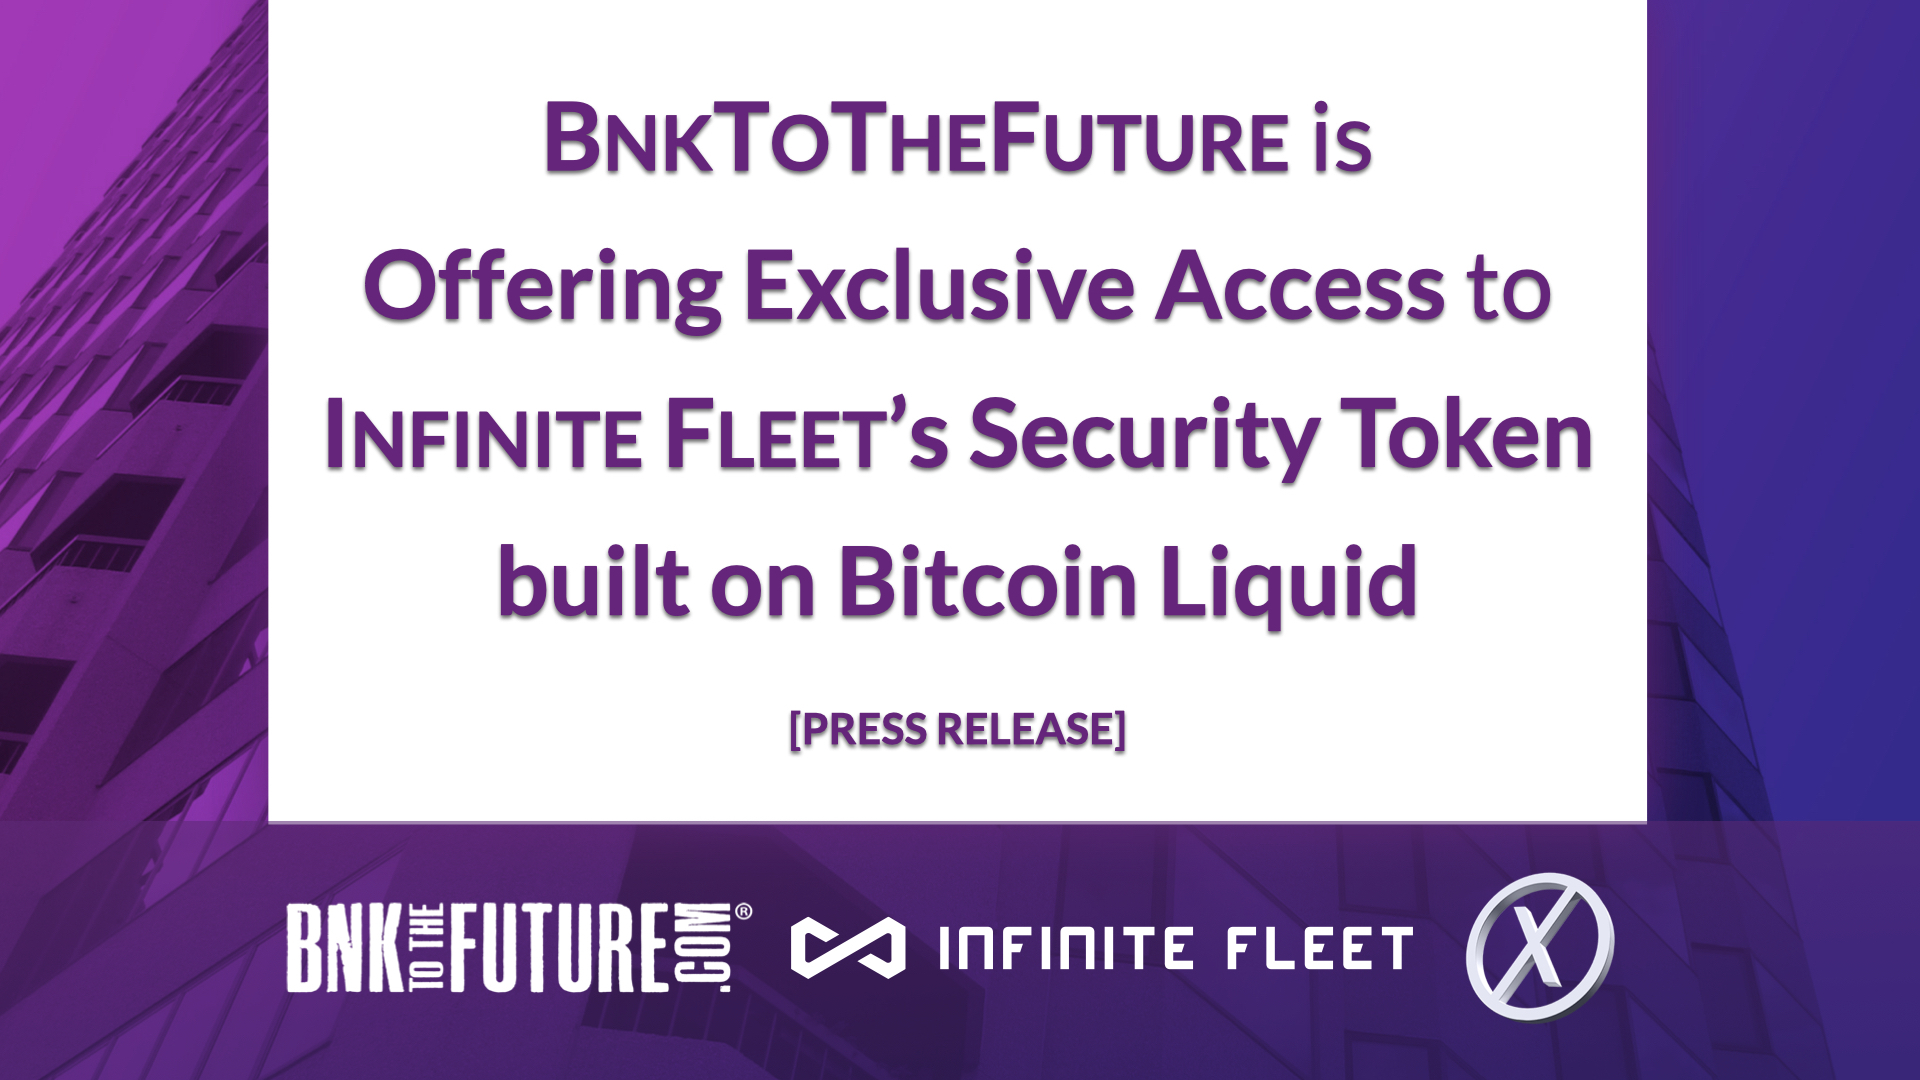 BnkToTheFuture is Offering Exclusive Access to Infinite Fleet's Security Token built on Bitcoin Liquid [Press Release]